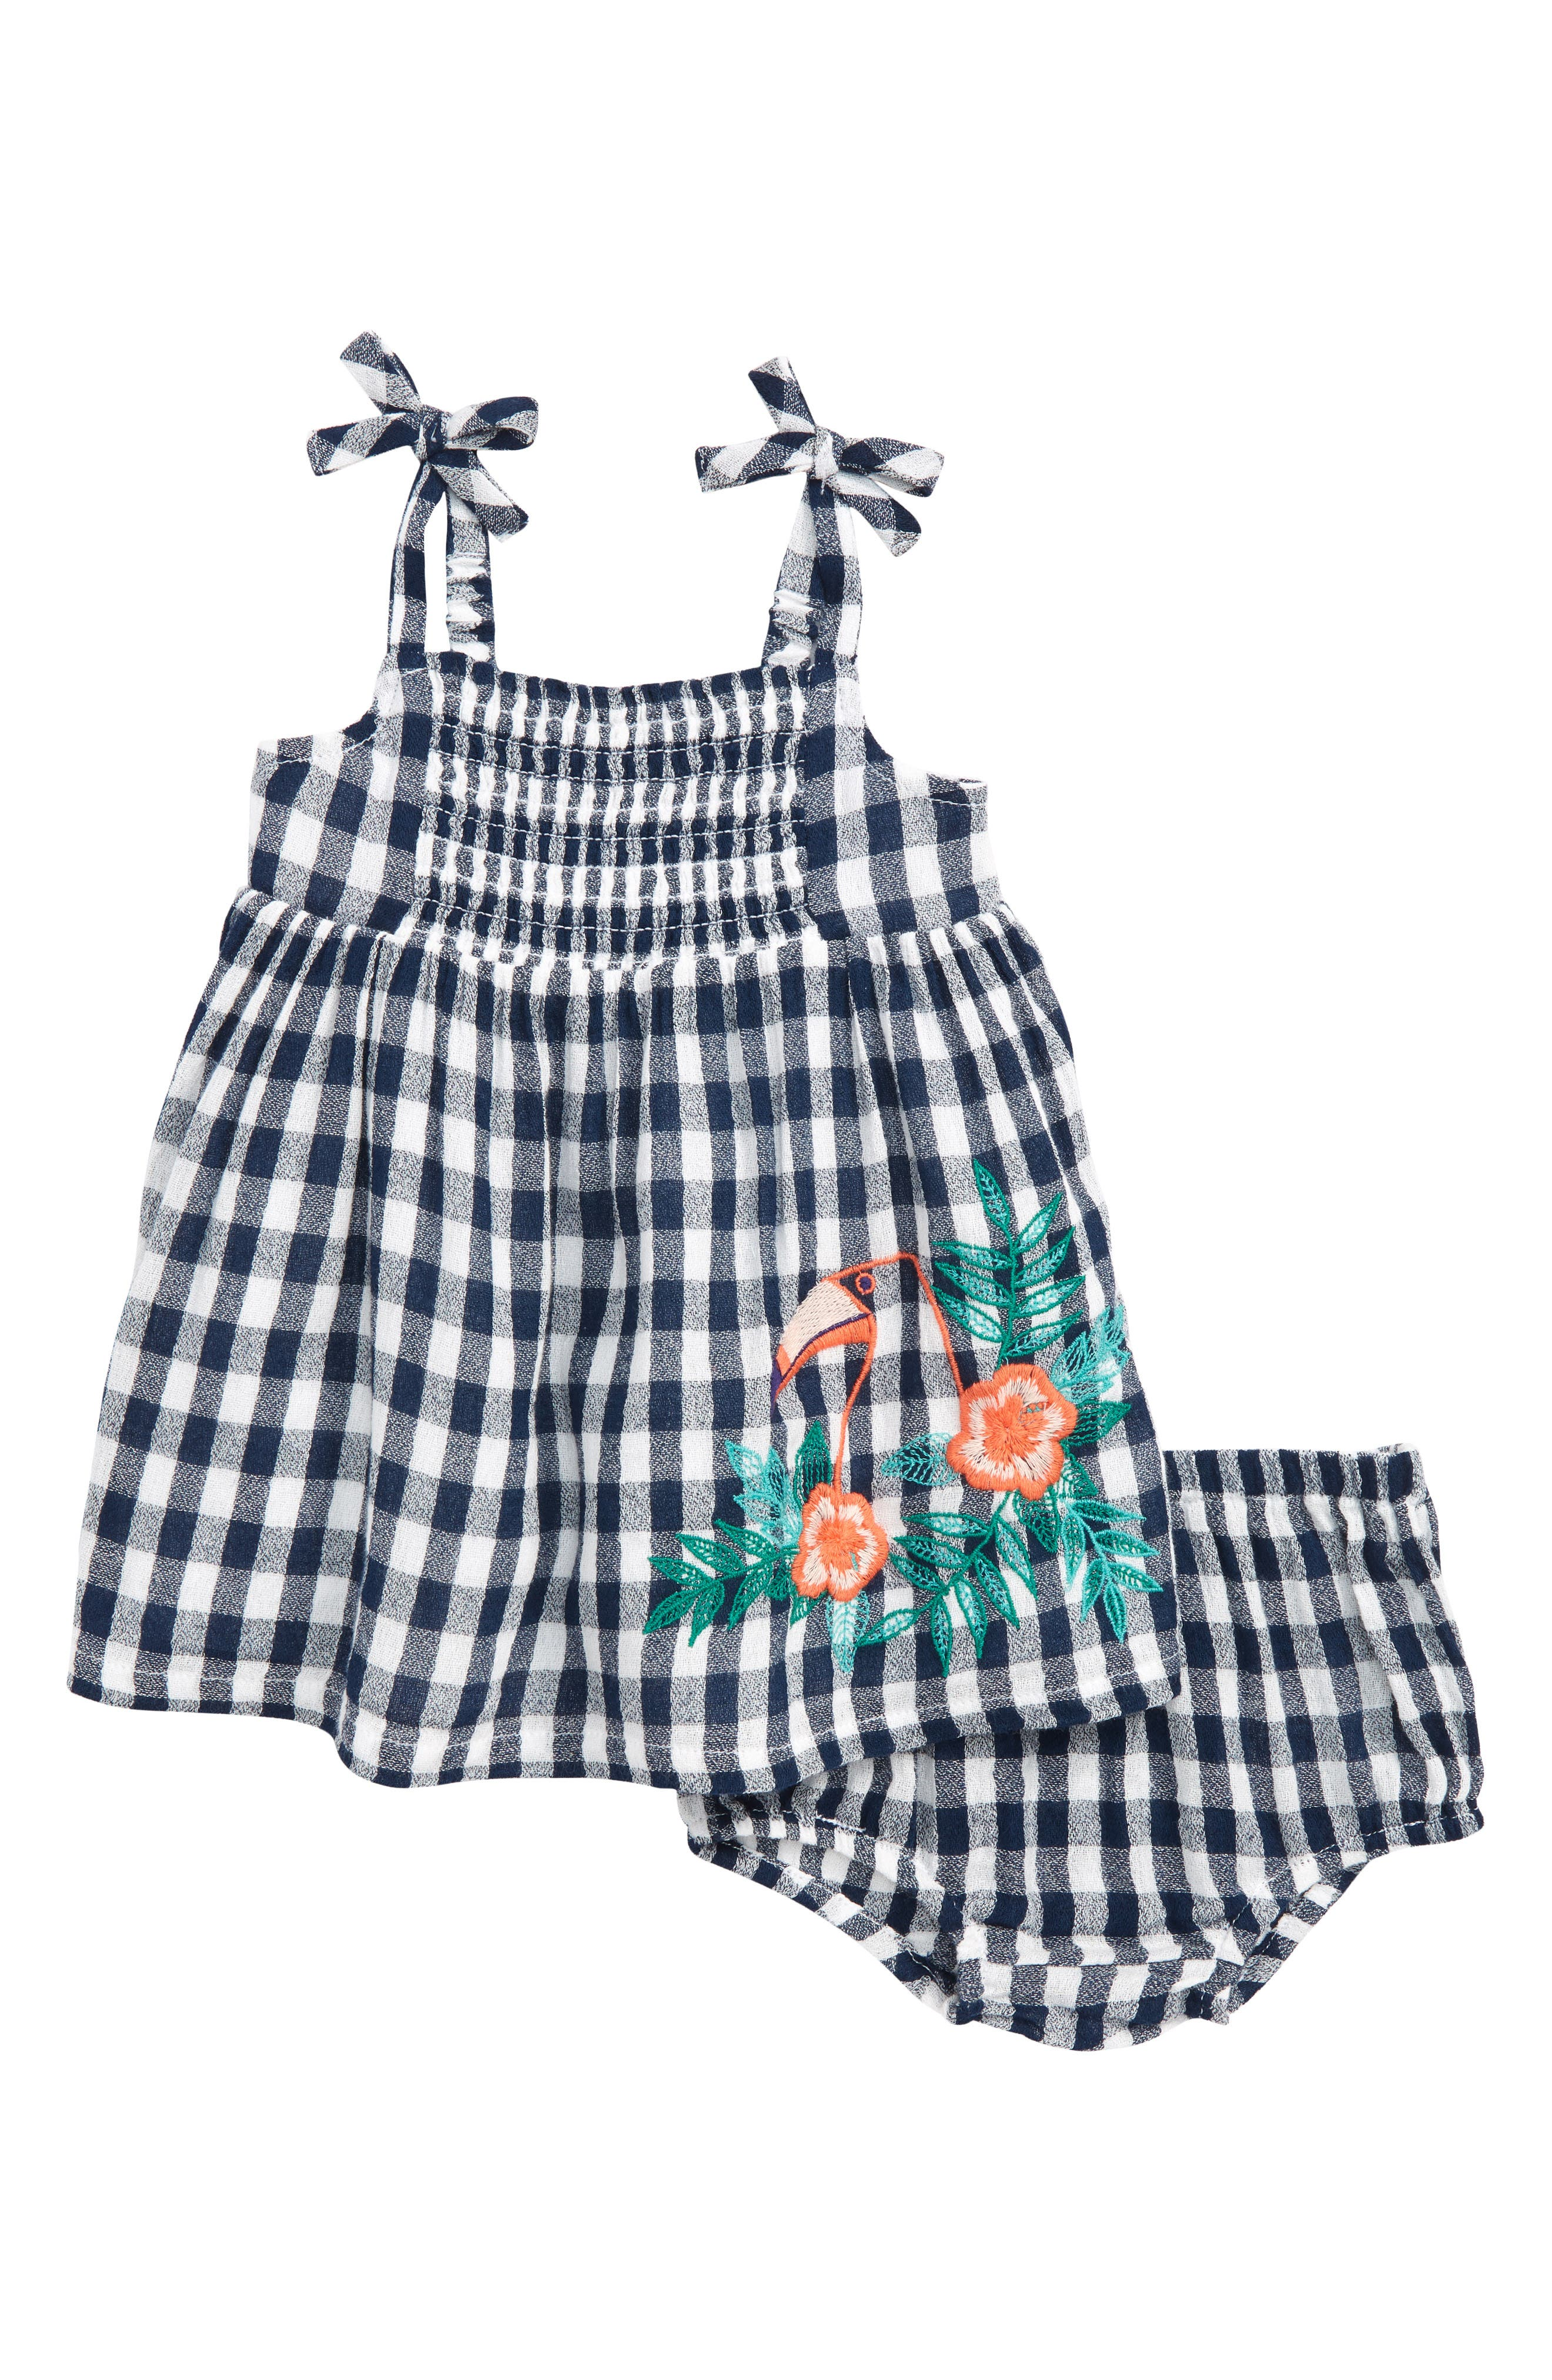 Smocked Gingham Dress,                             Main thumbnail 1, color,                             Navy Armada - White Gingham